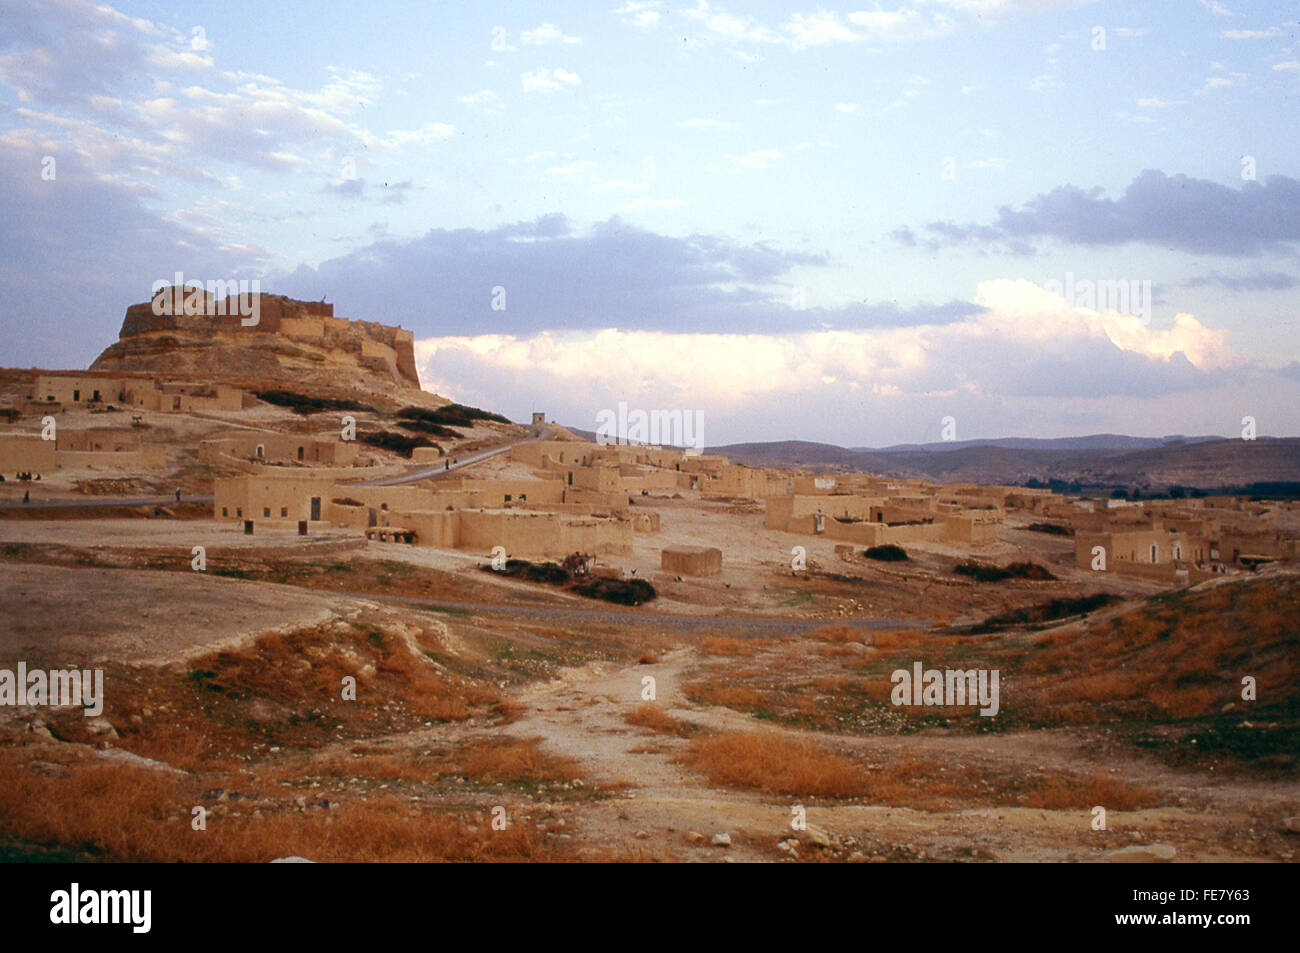 citadel and crusader castle of Qalat Nejm in desert of Syria - Stock Image